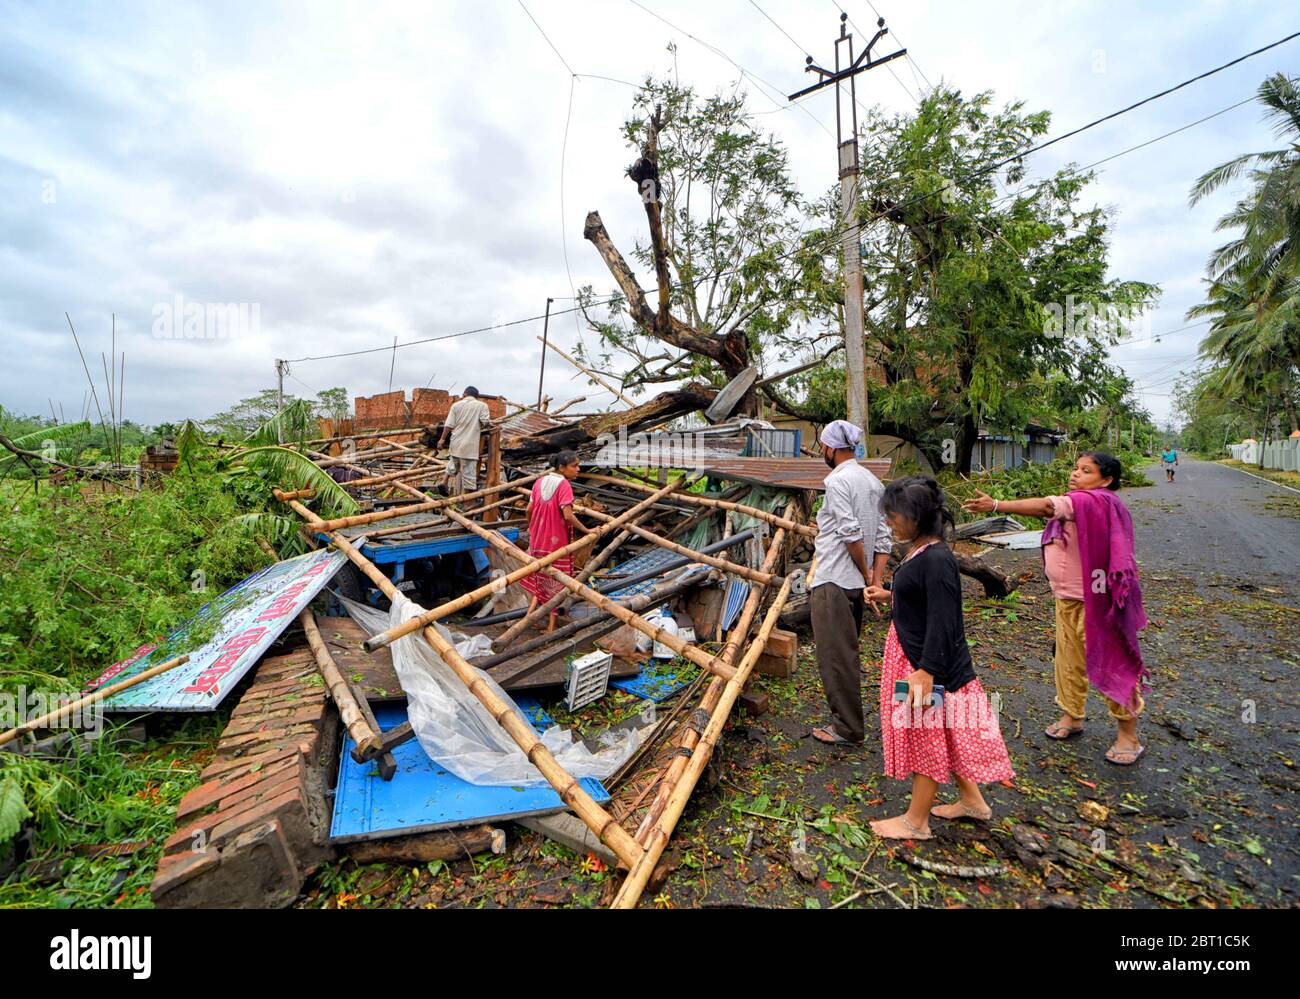 Baruipur, West Bengal, India. 21st May, 2020. A completely devastated house during the aftermath.Cyclone Amphan has hit west Bengal with a speed of 150 Km/ hr. which caused huge destruction of lively hood and 76 deaths have been reported so far. Credit: Avishek Das/SOPA Images/ZUMA Wire/Alamy Live News Stock Photo